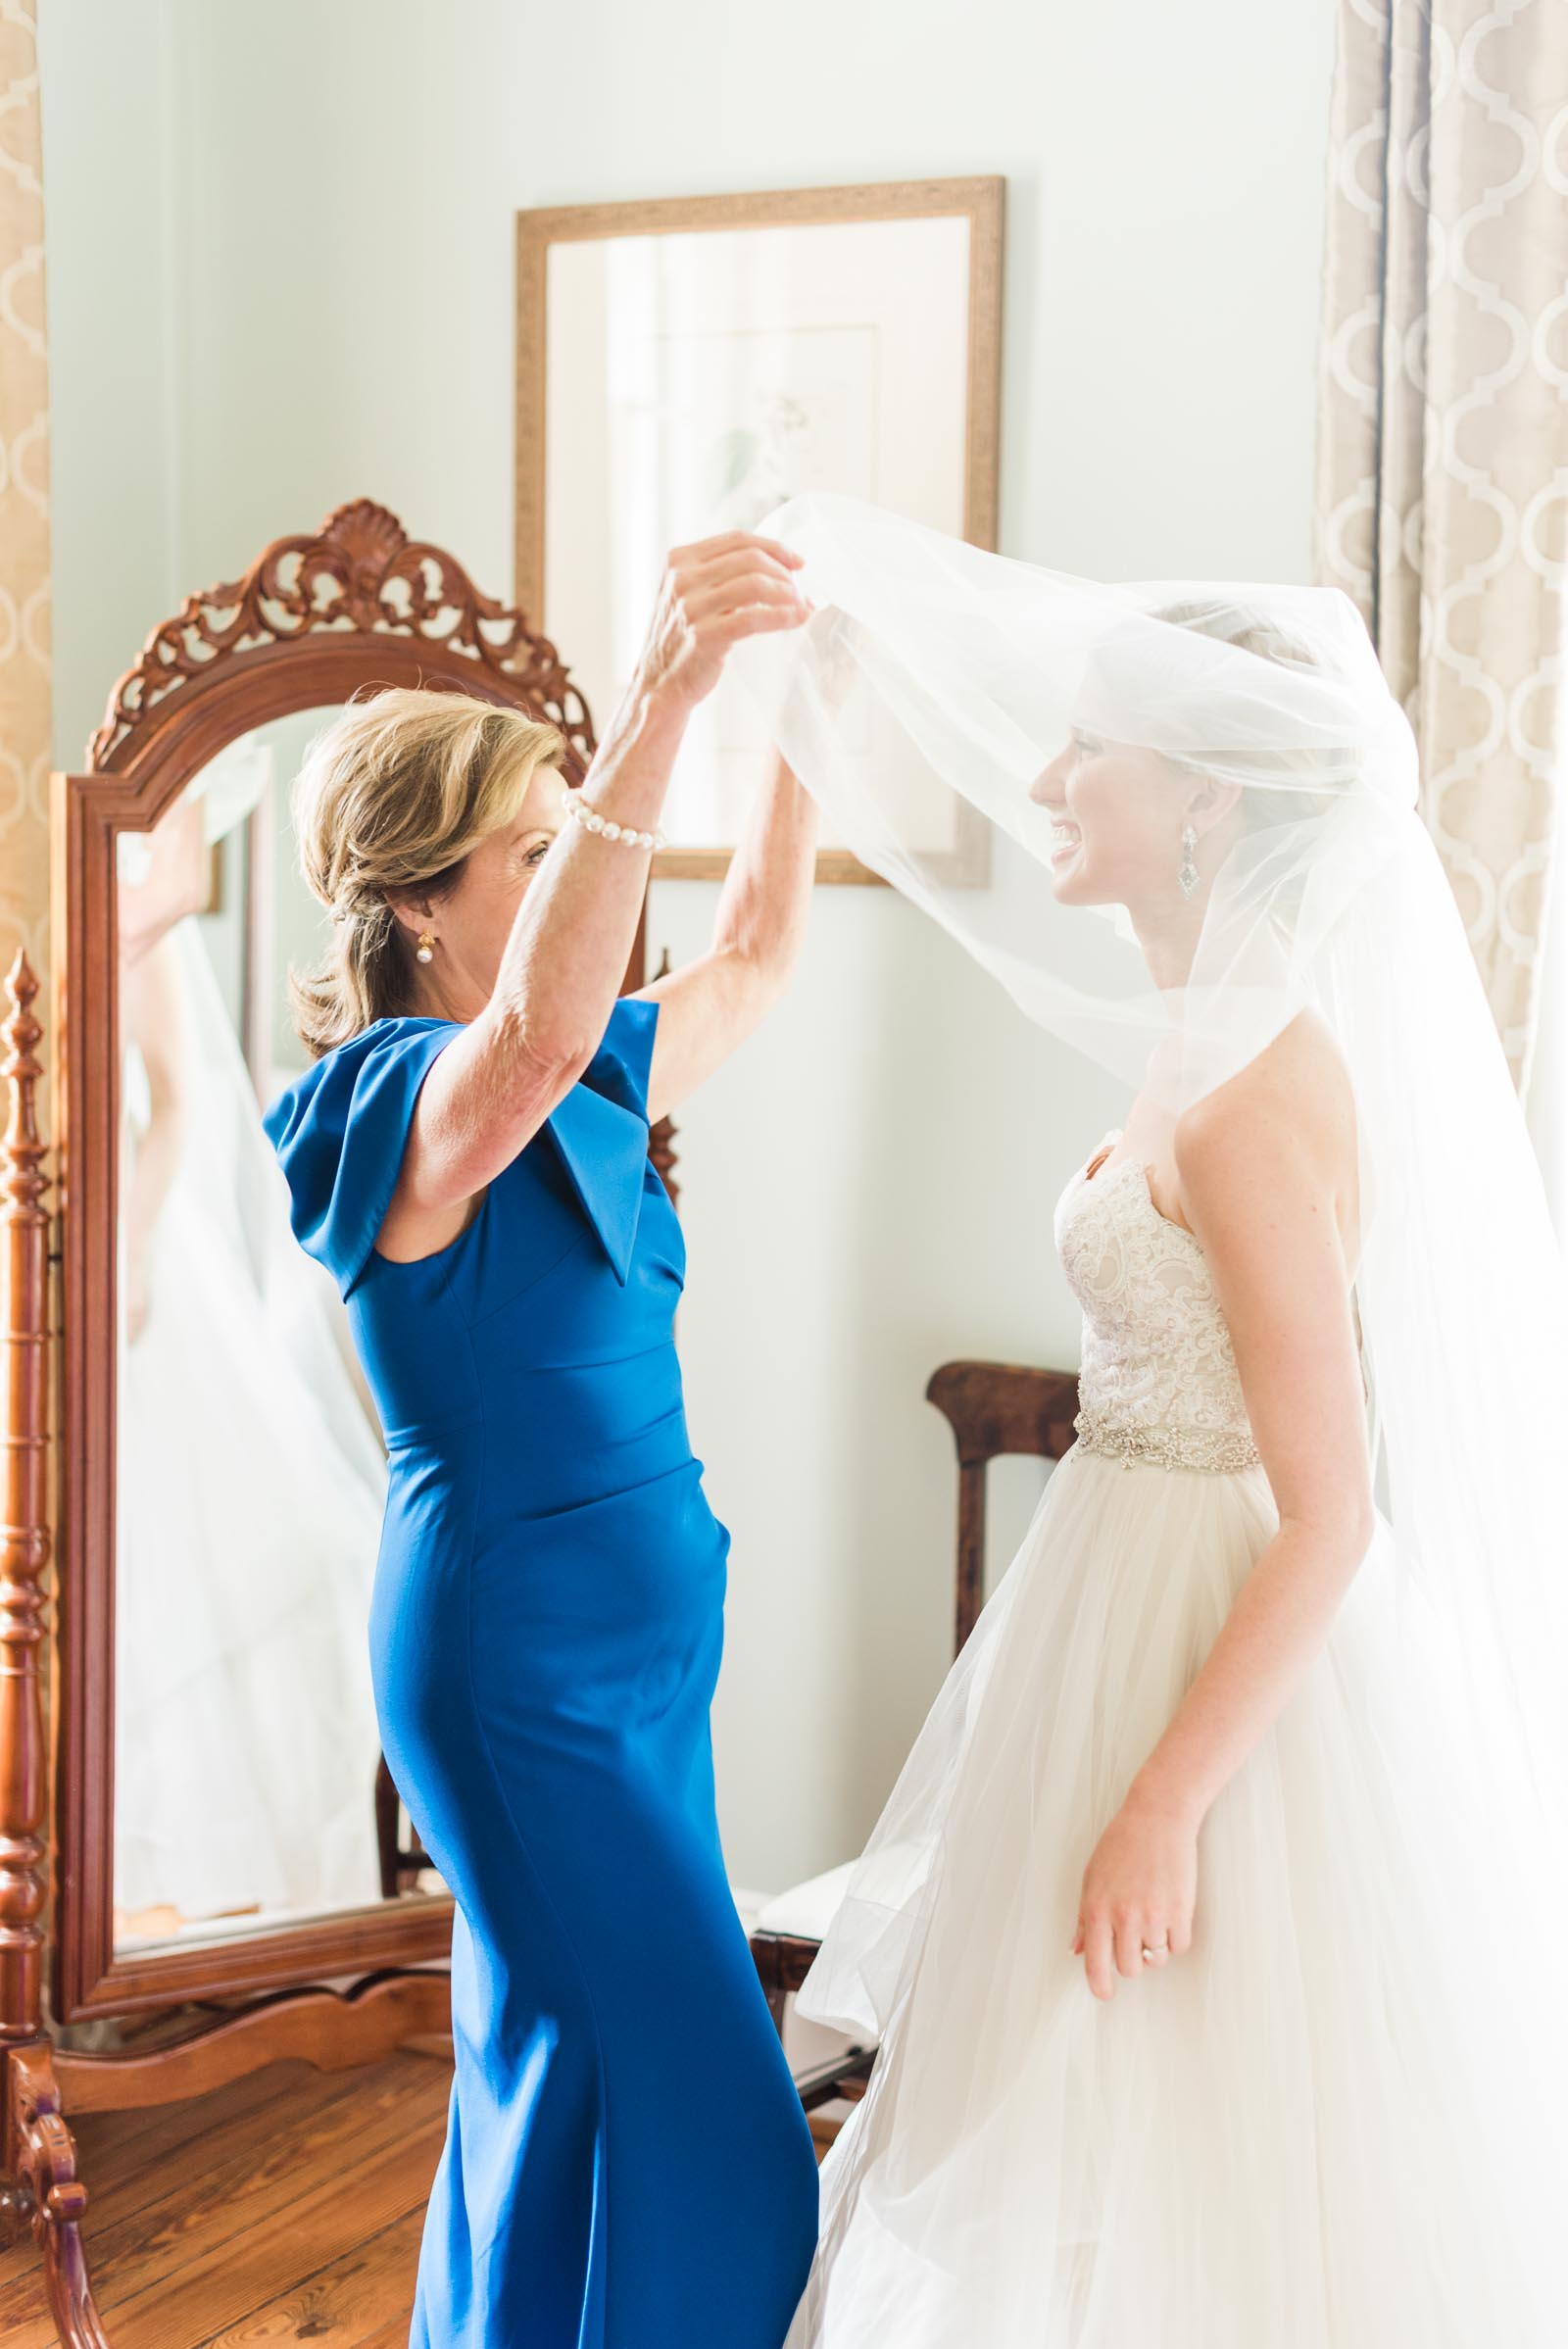 South Carolina Lace House Wedding Markie Walden Photography-20.jpg